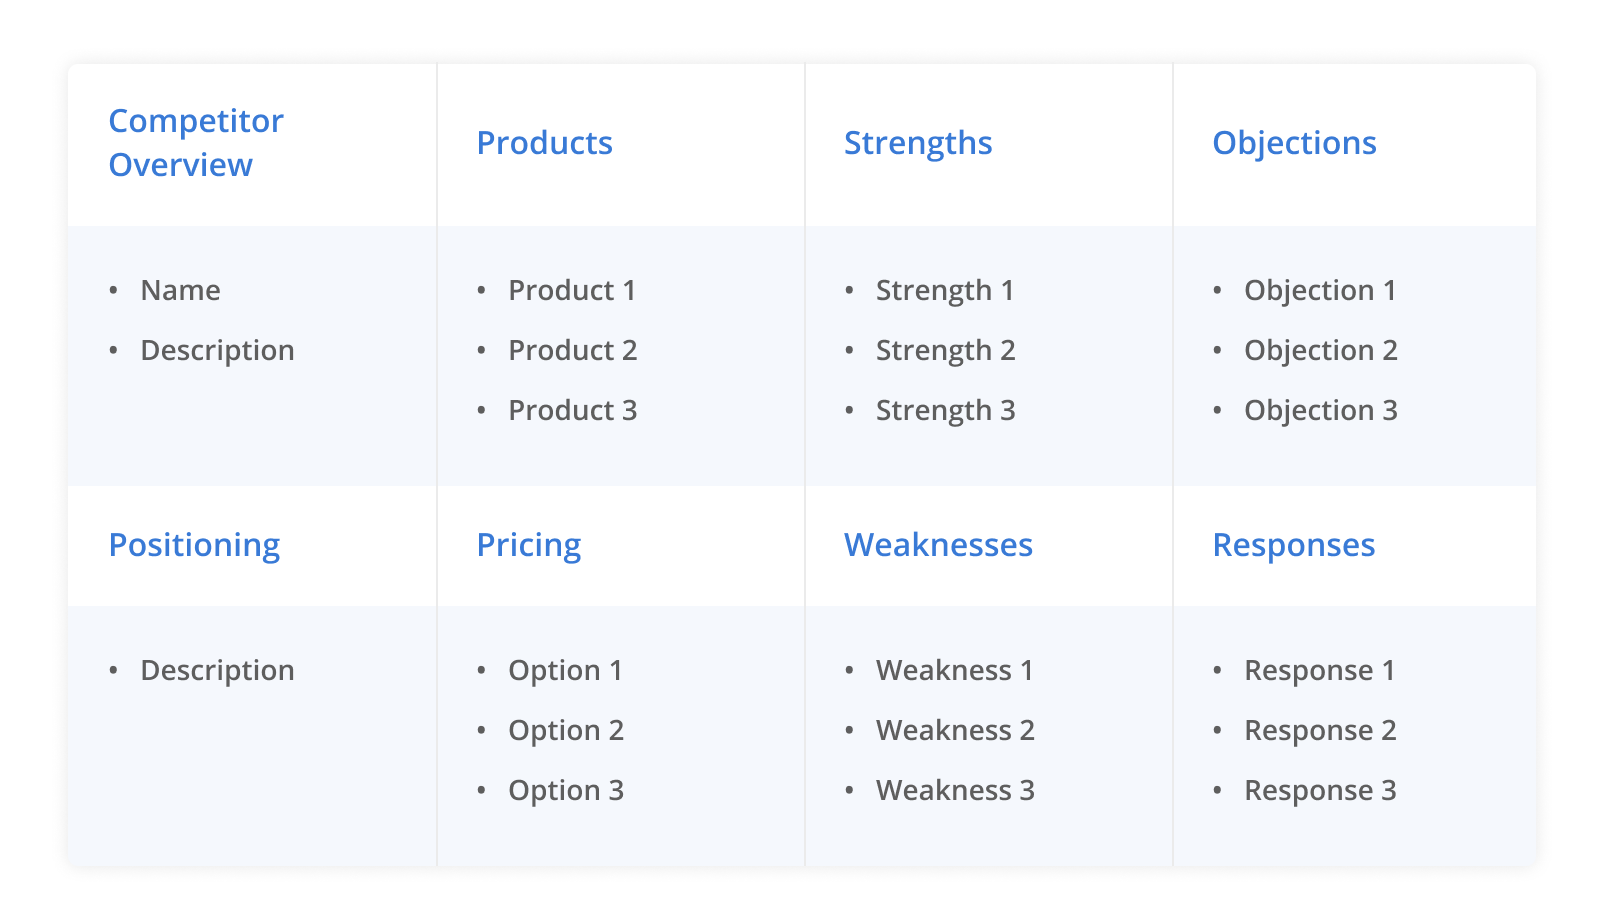 B2B SaaS Battlecard Format: Competitor Overview, Positioning, Products, Pricing, Strengths, Weaknesses, Objections, Responses.